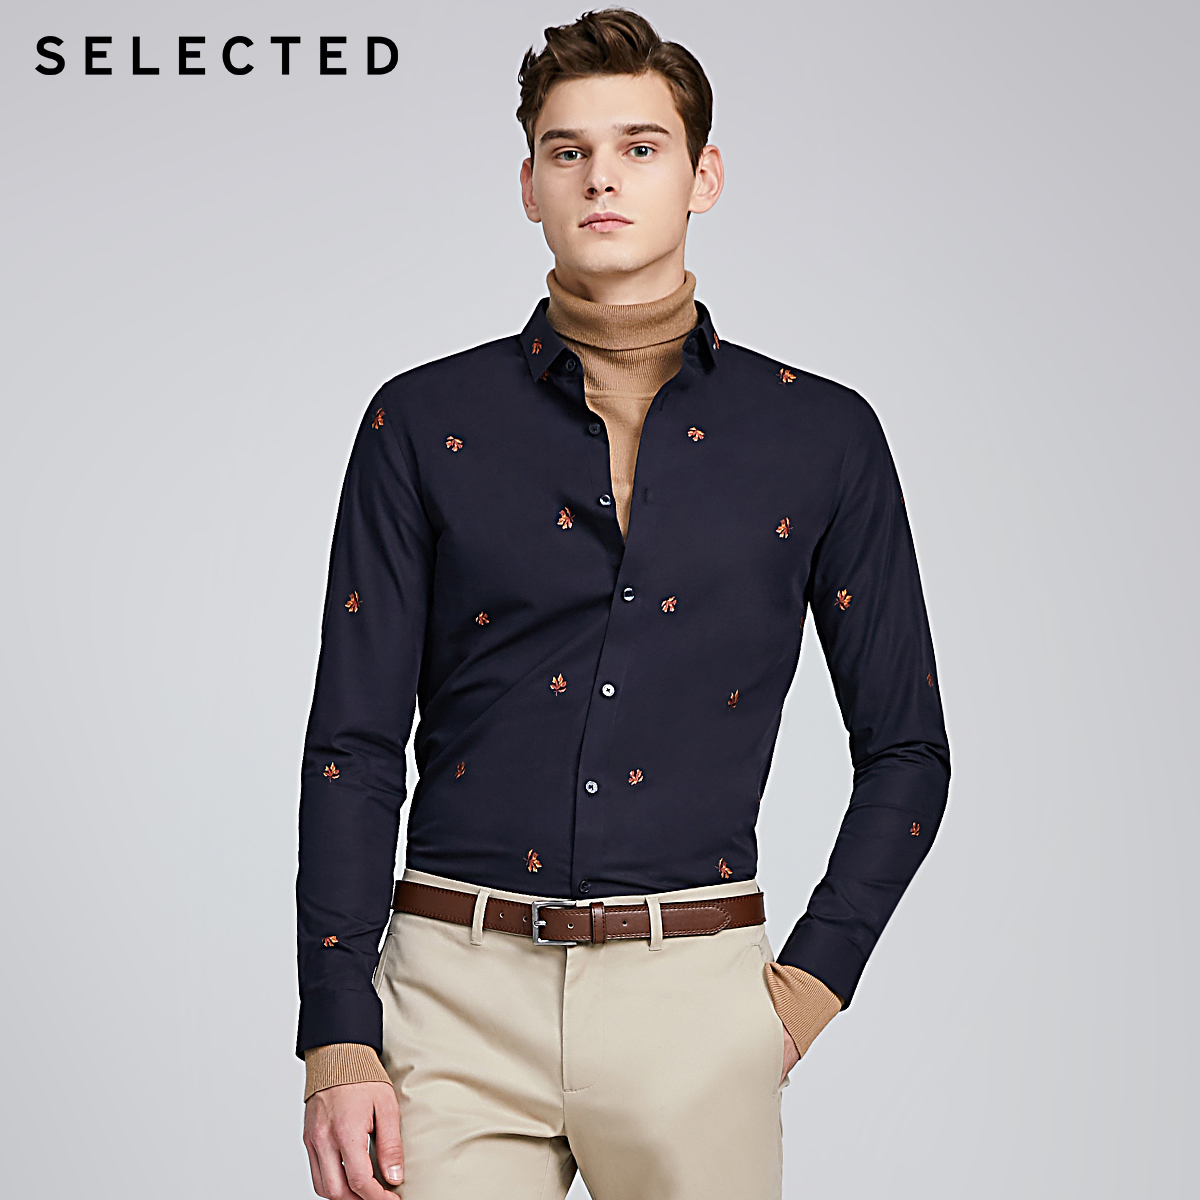 SELECTED Men's 100% Cotton Embroidery Slim Fit Long sleeve Shirts S|419405561